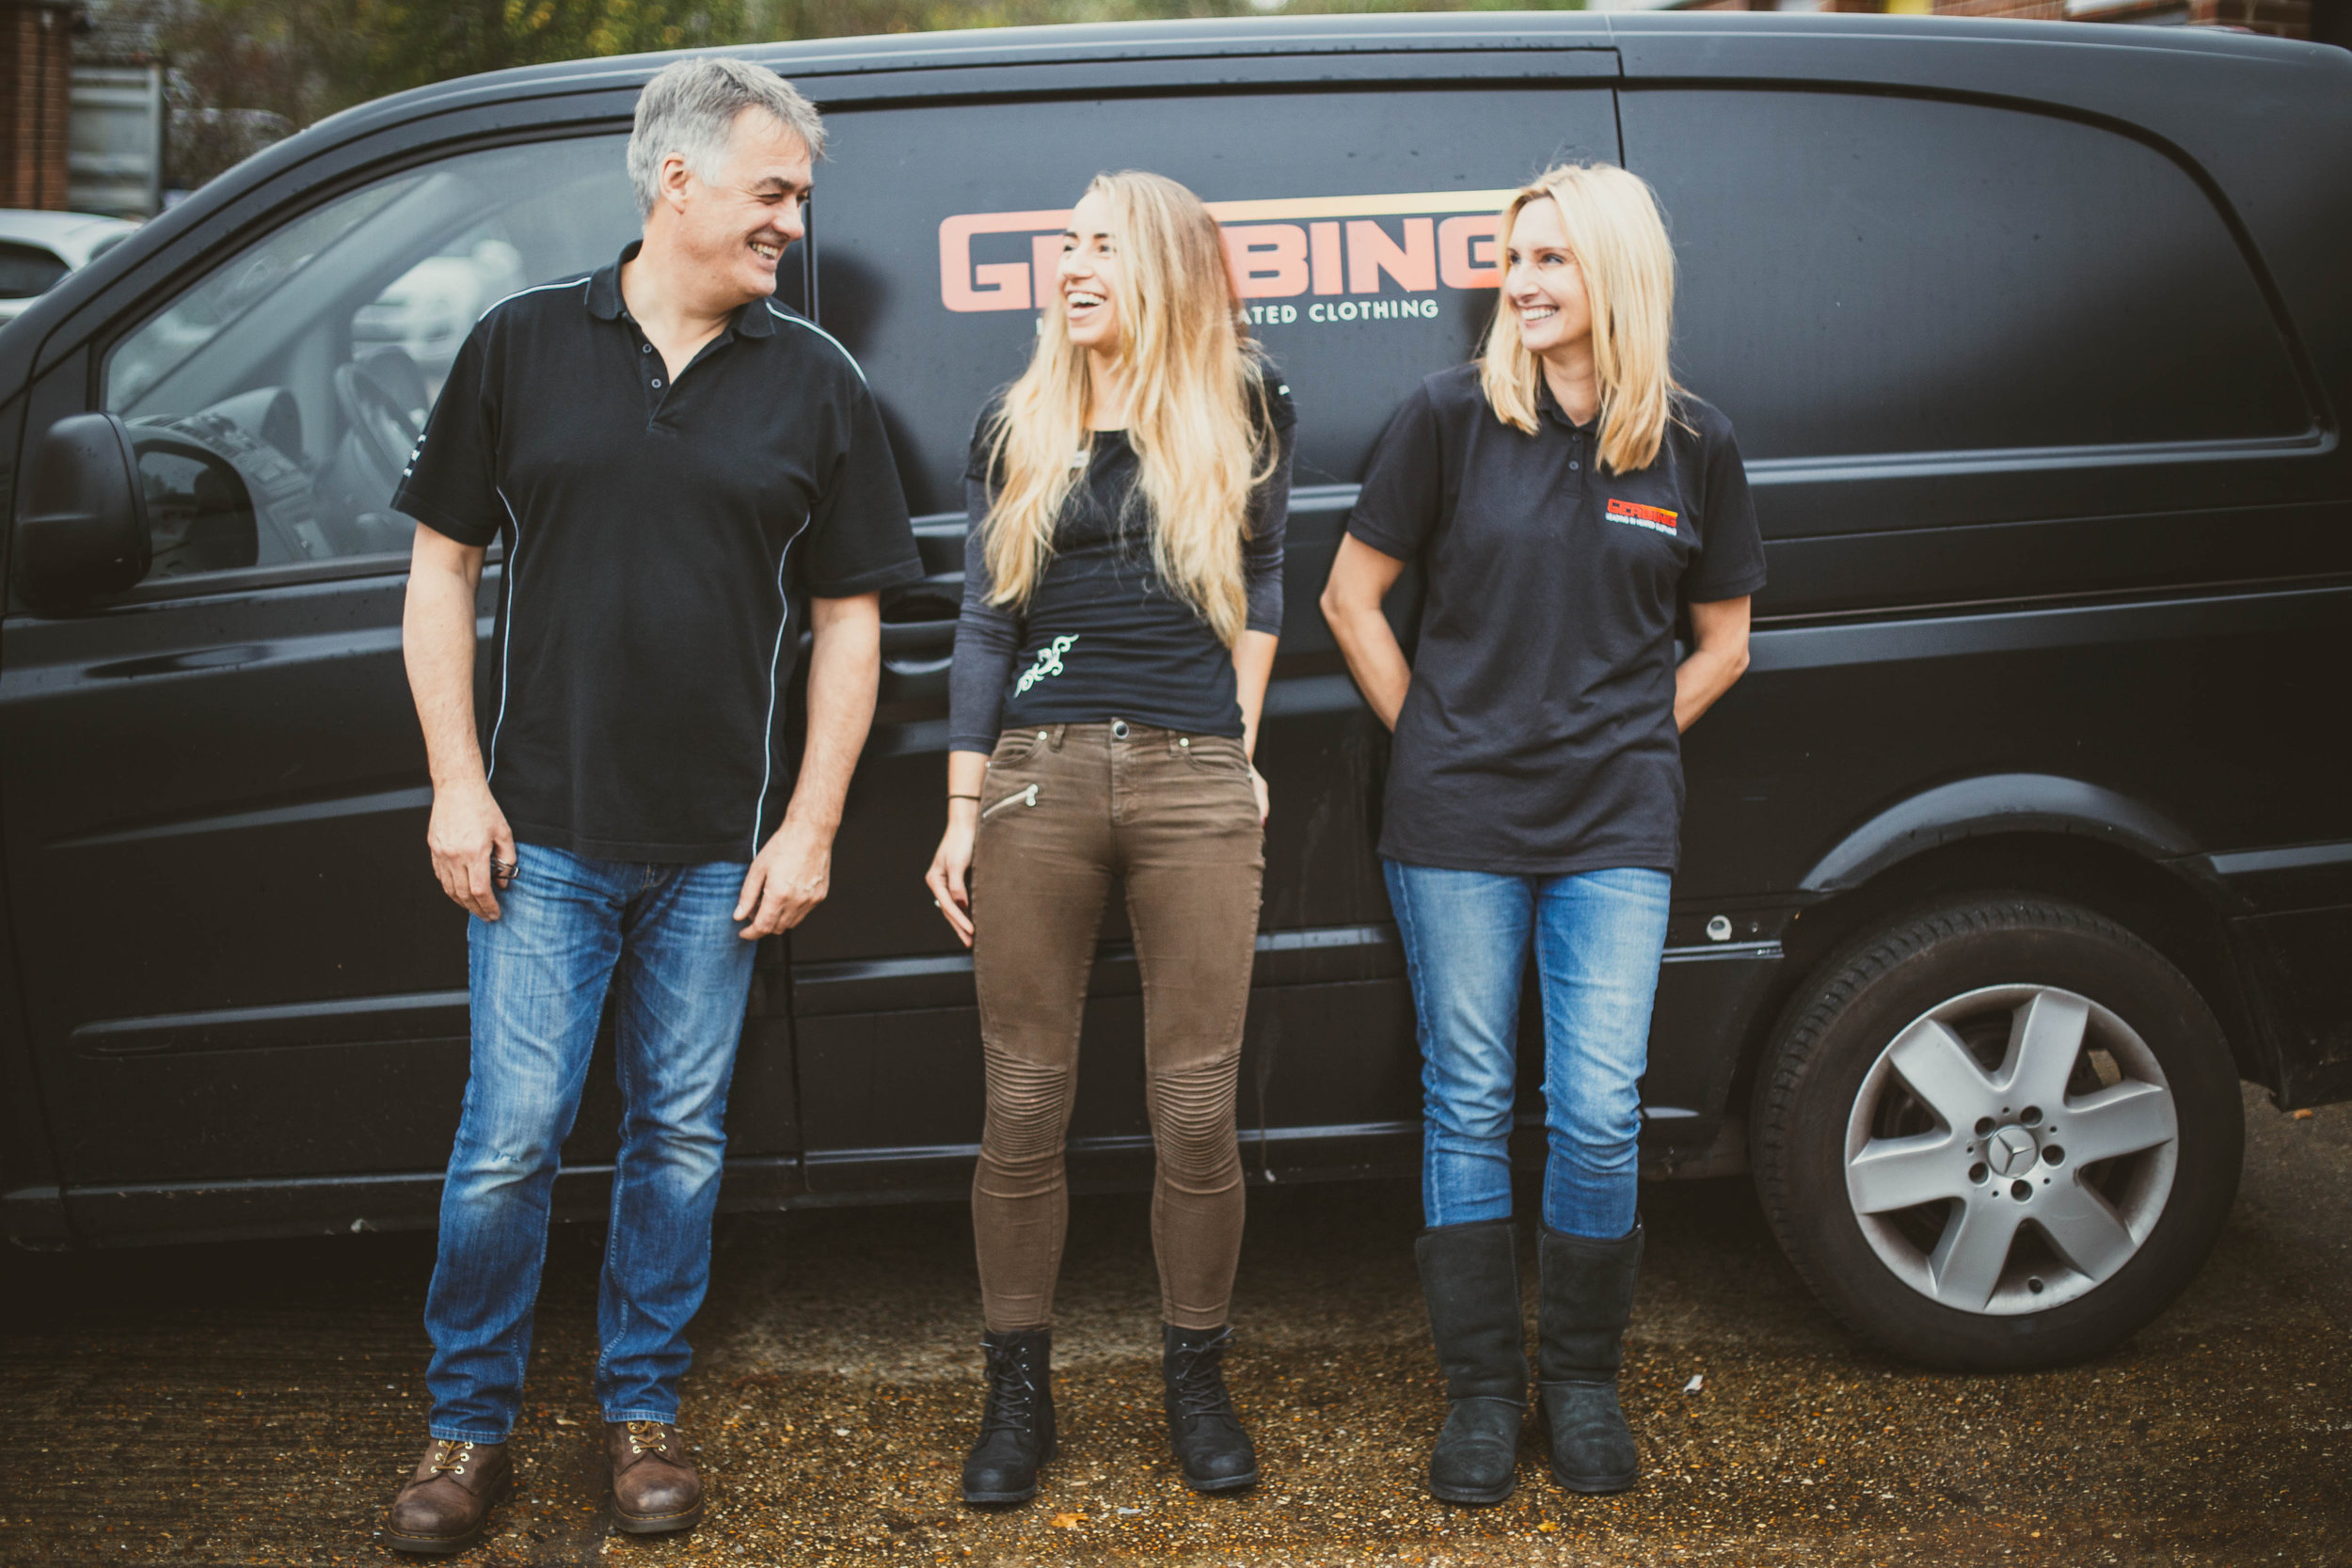 Motoport UK are the official UK distributors for protective motorcycle jeans brand Draggin Jeans